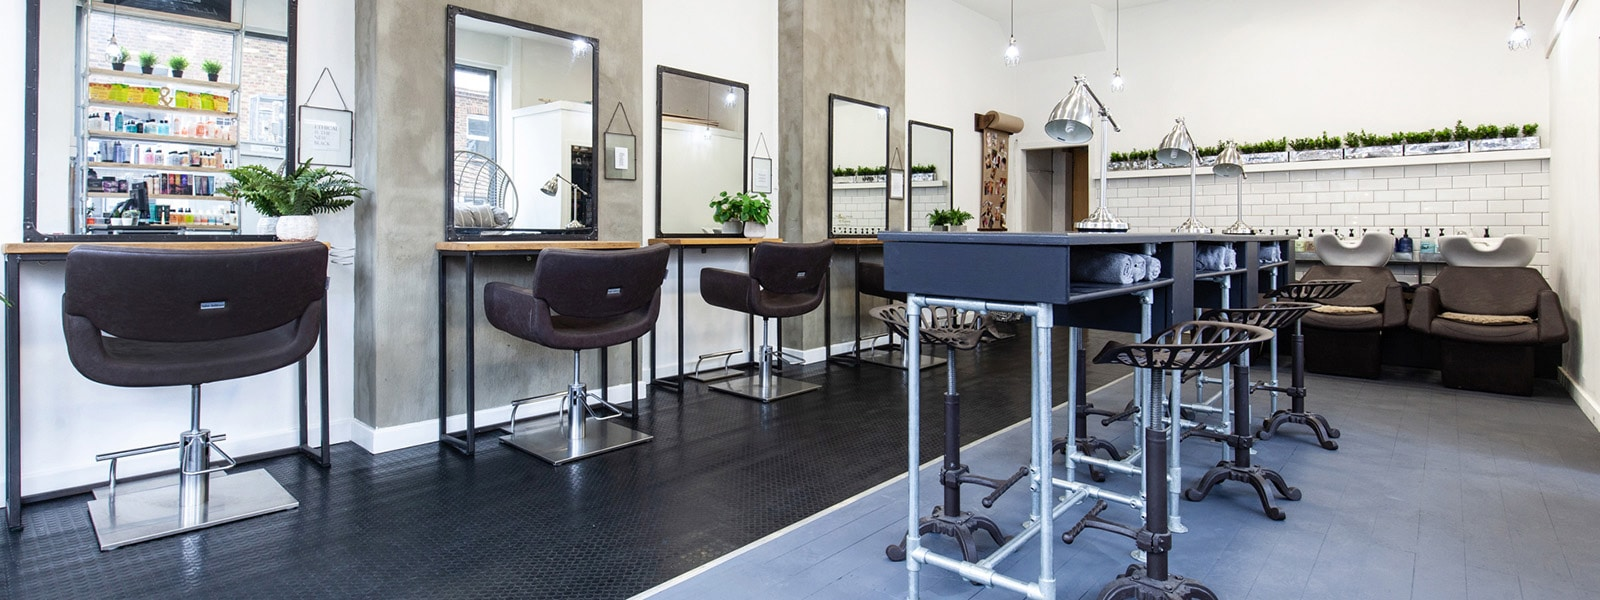 Interior of our beauty salon